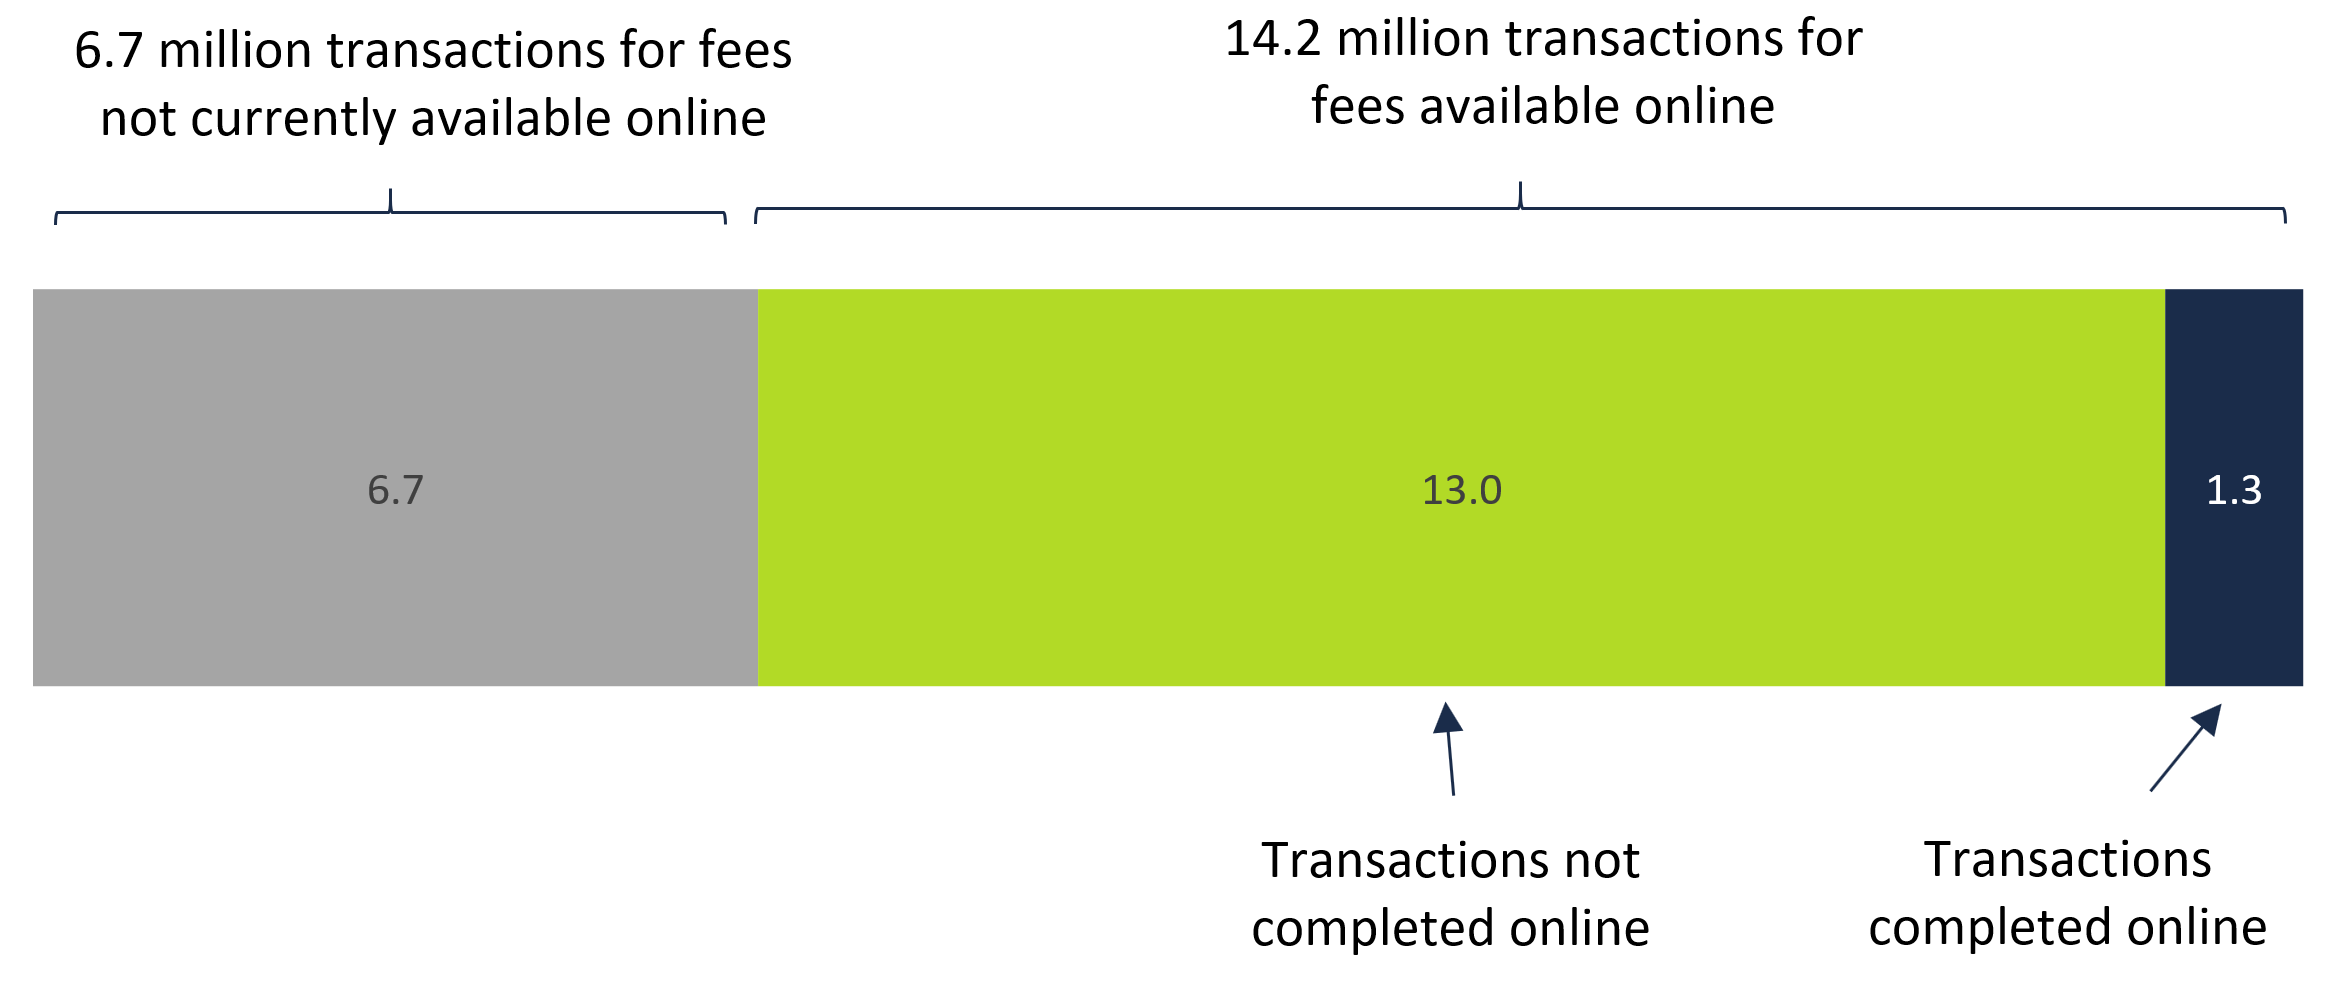 Breakdown of 20.9 million driving fees transactions by method of delivery